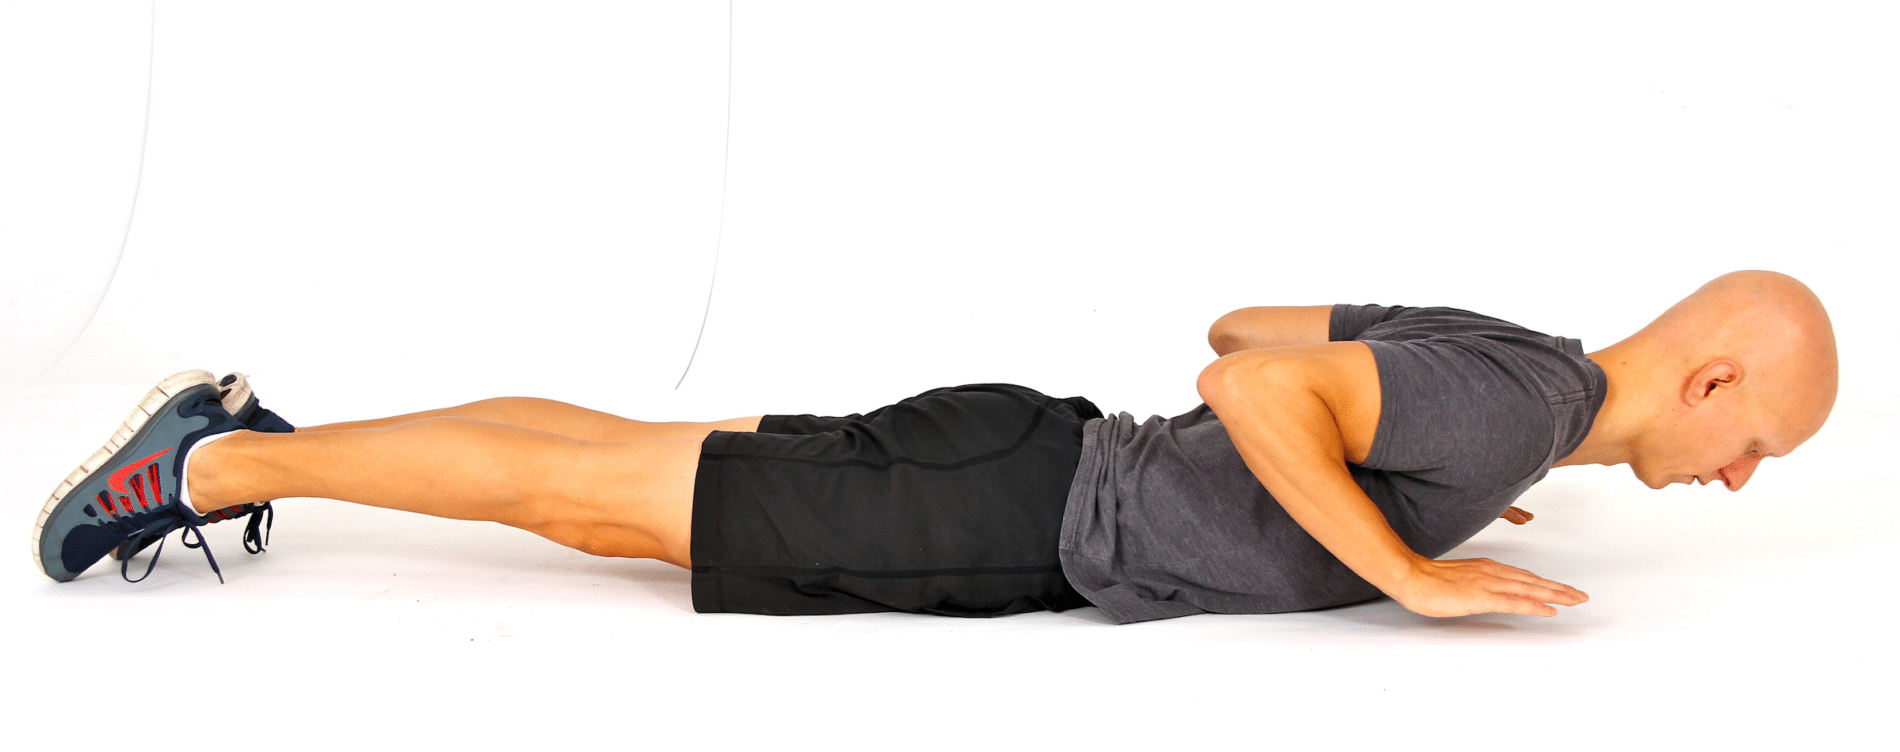 10 Best Bodyweight Exercises - Back Extensions